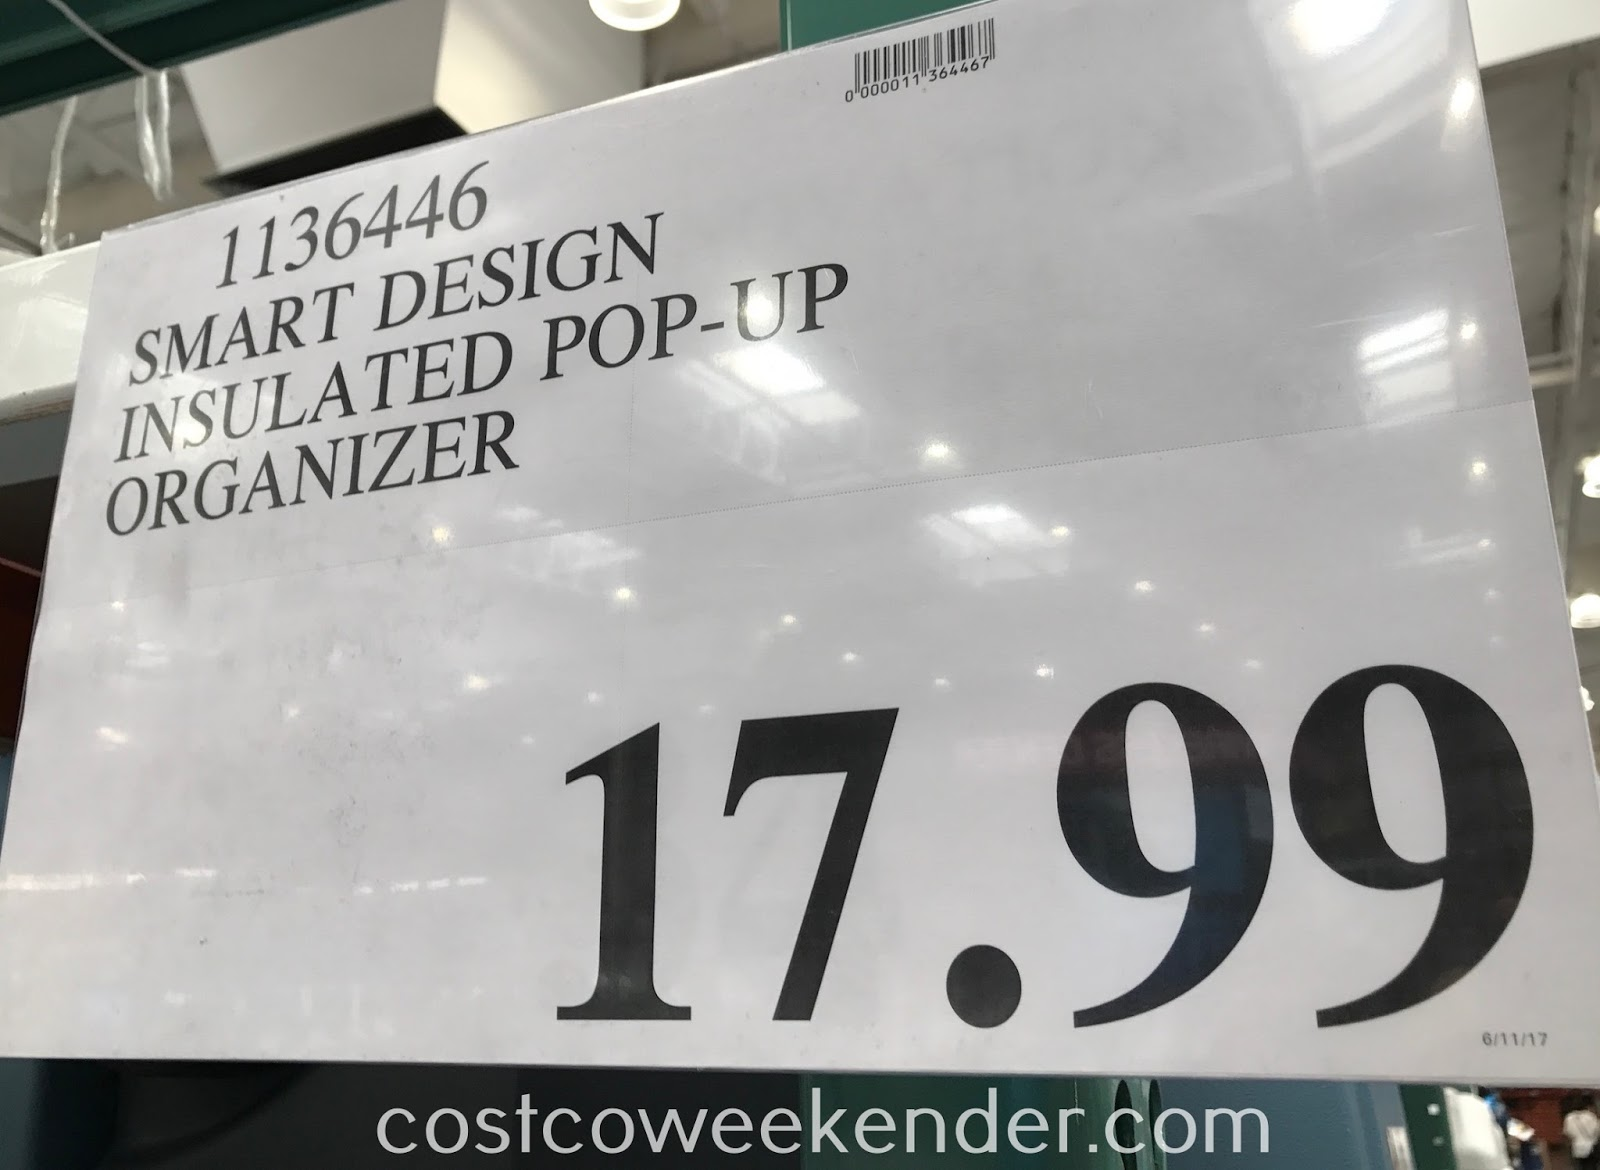 Deal for the Smart Design Pop-up Insulated Organizer at Costco